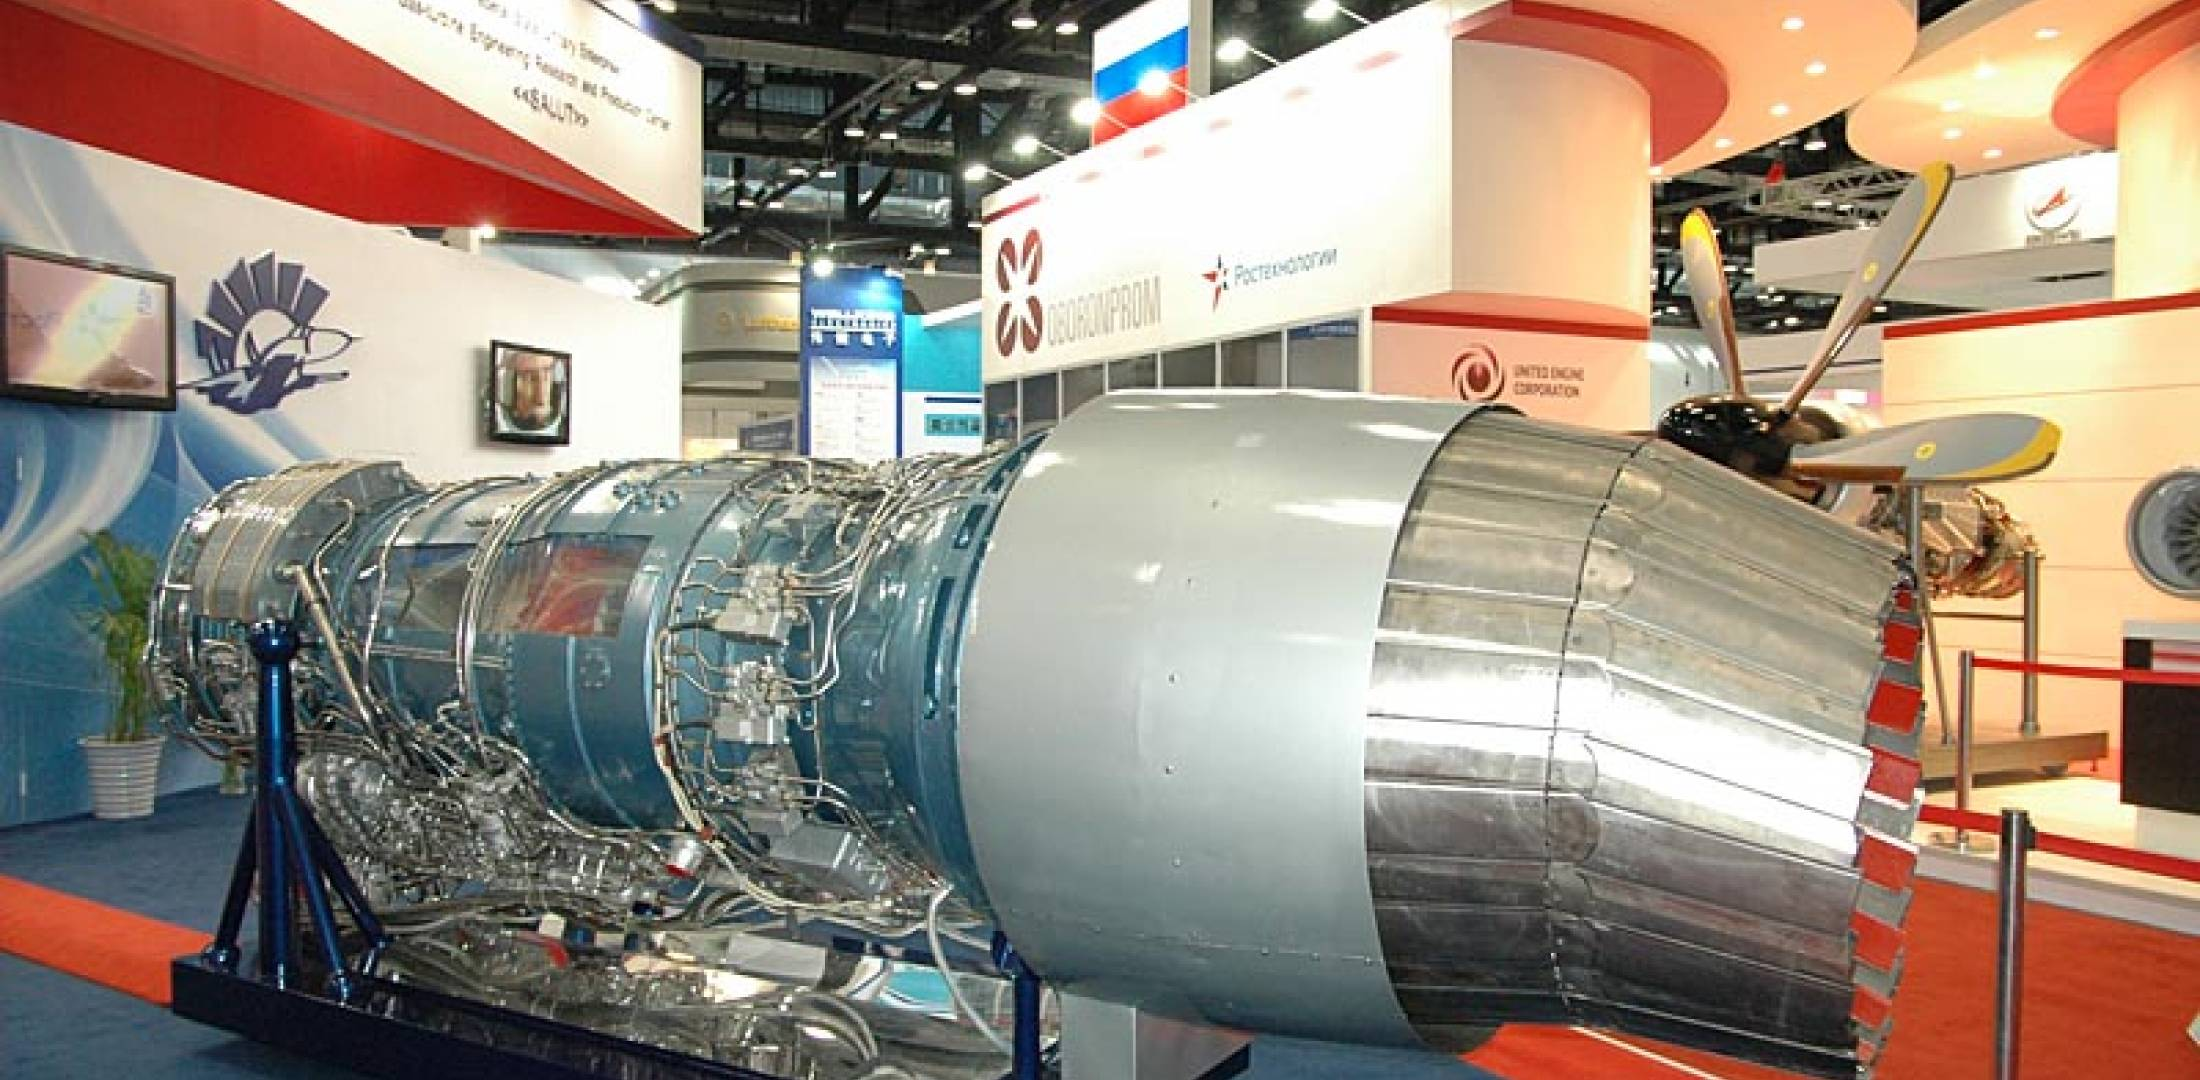 Russia has now sold nearly 1,000 AL-31 engines to China, where they power J-10 a